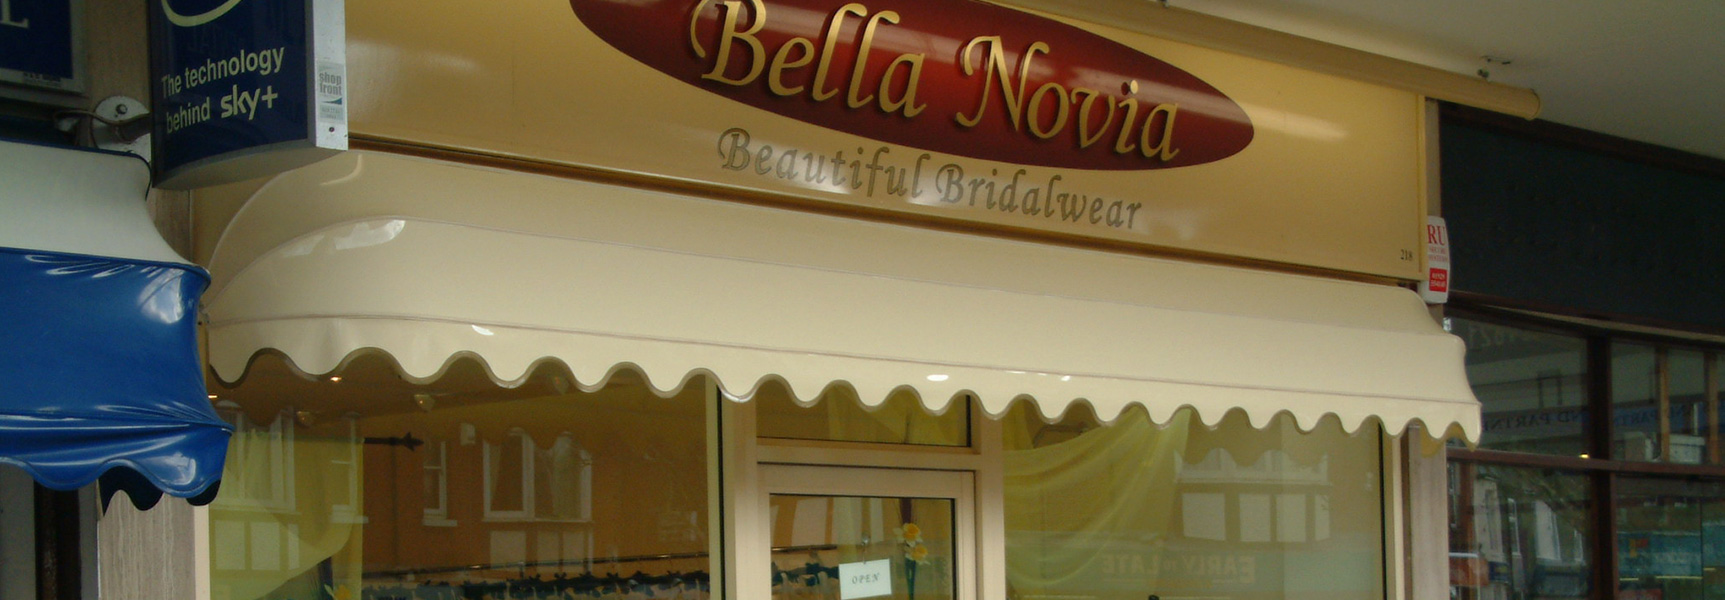 Shop Front Awnings & Canopies - Retail Awnings - Broadview